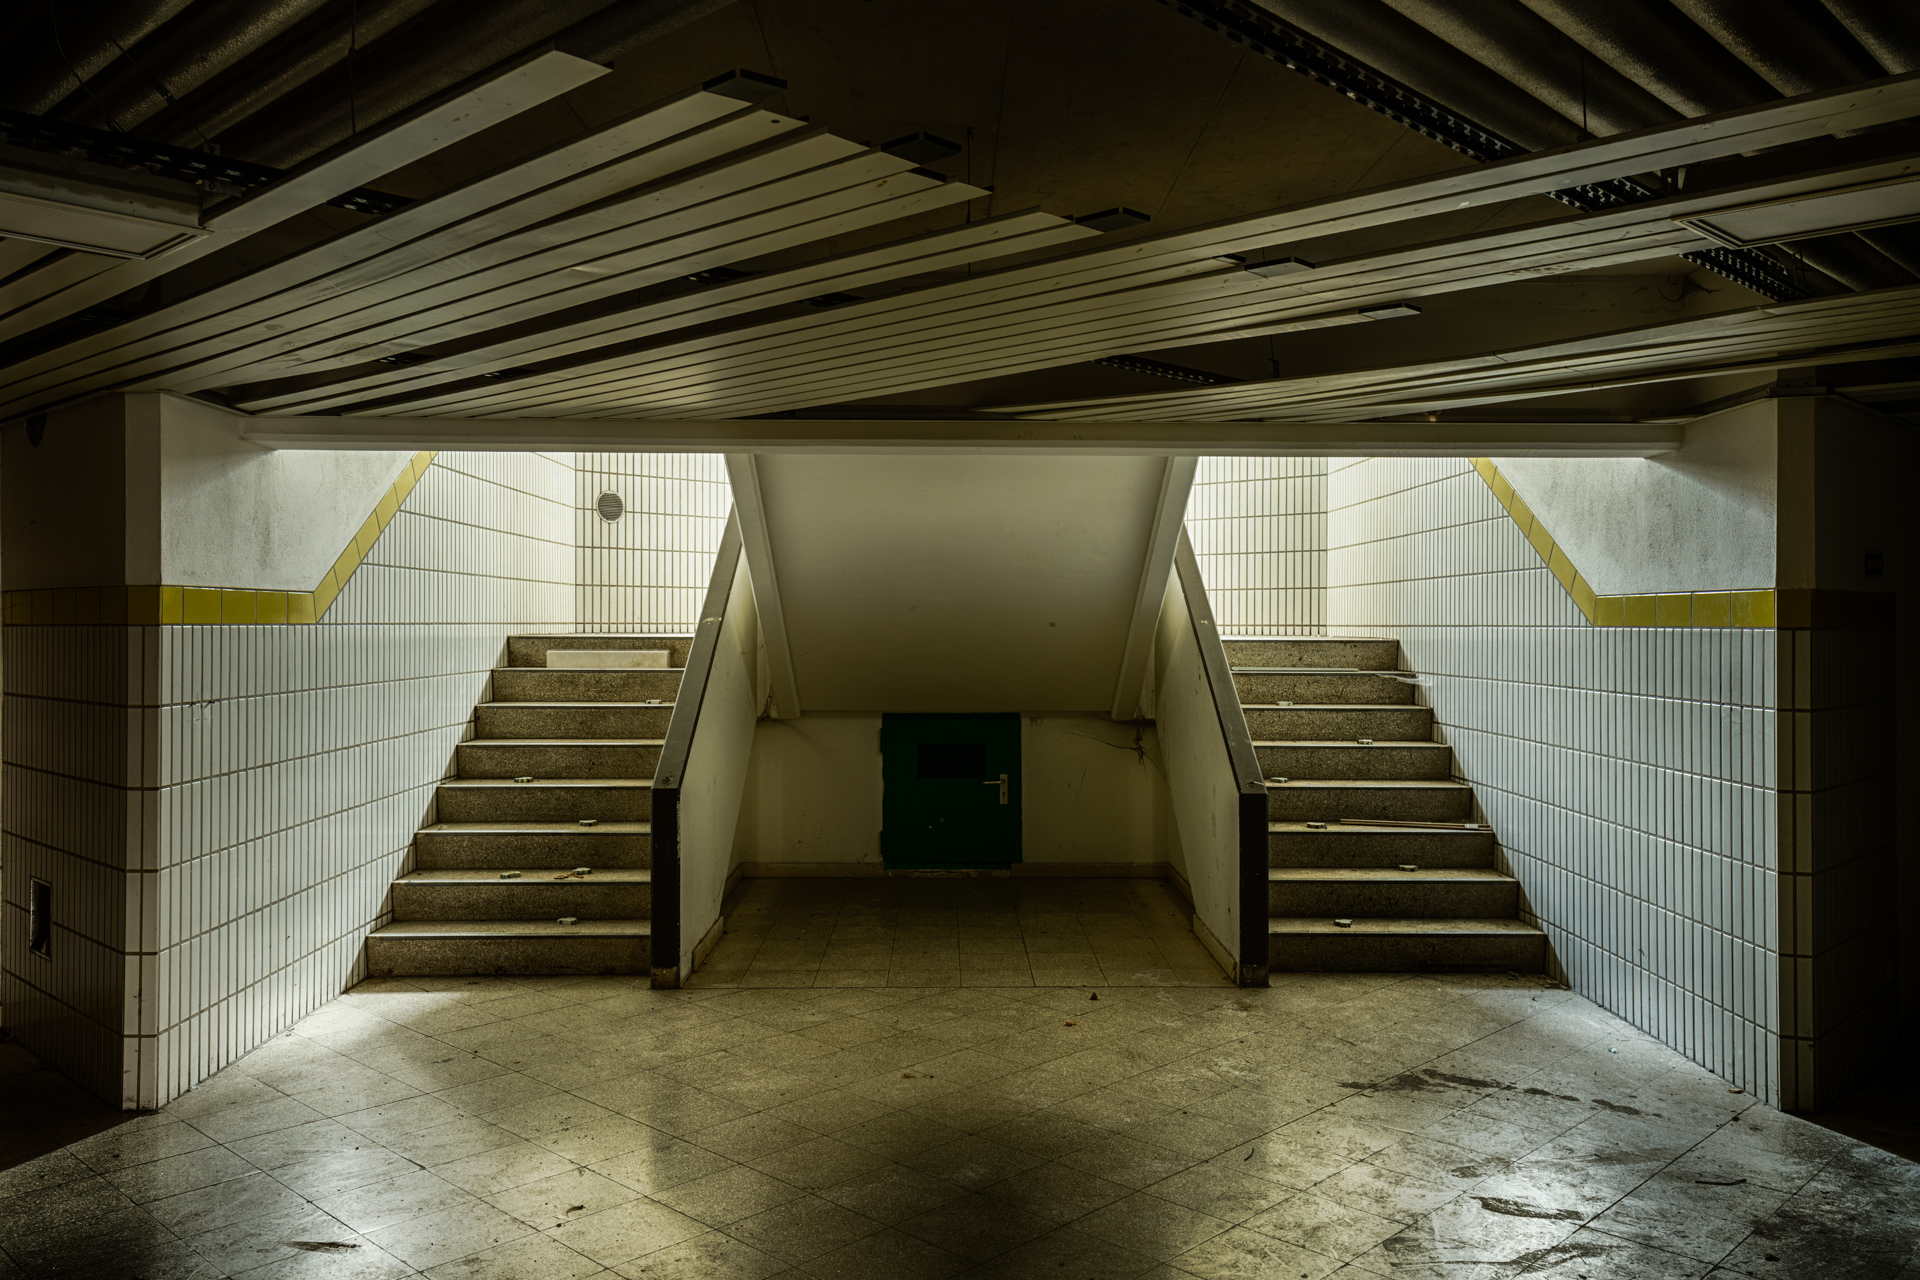 Urban Exploration - Military Peace - Double Stairs - Basement